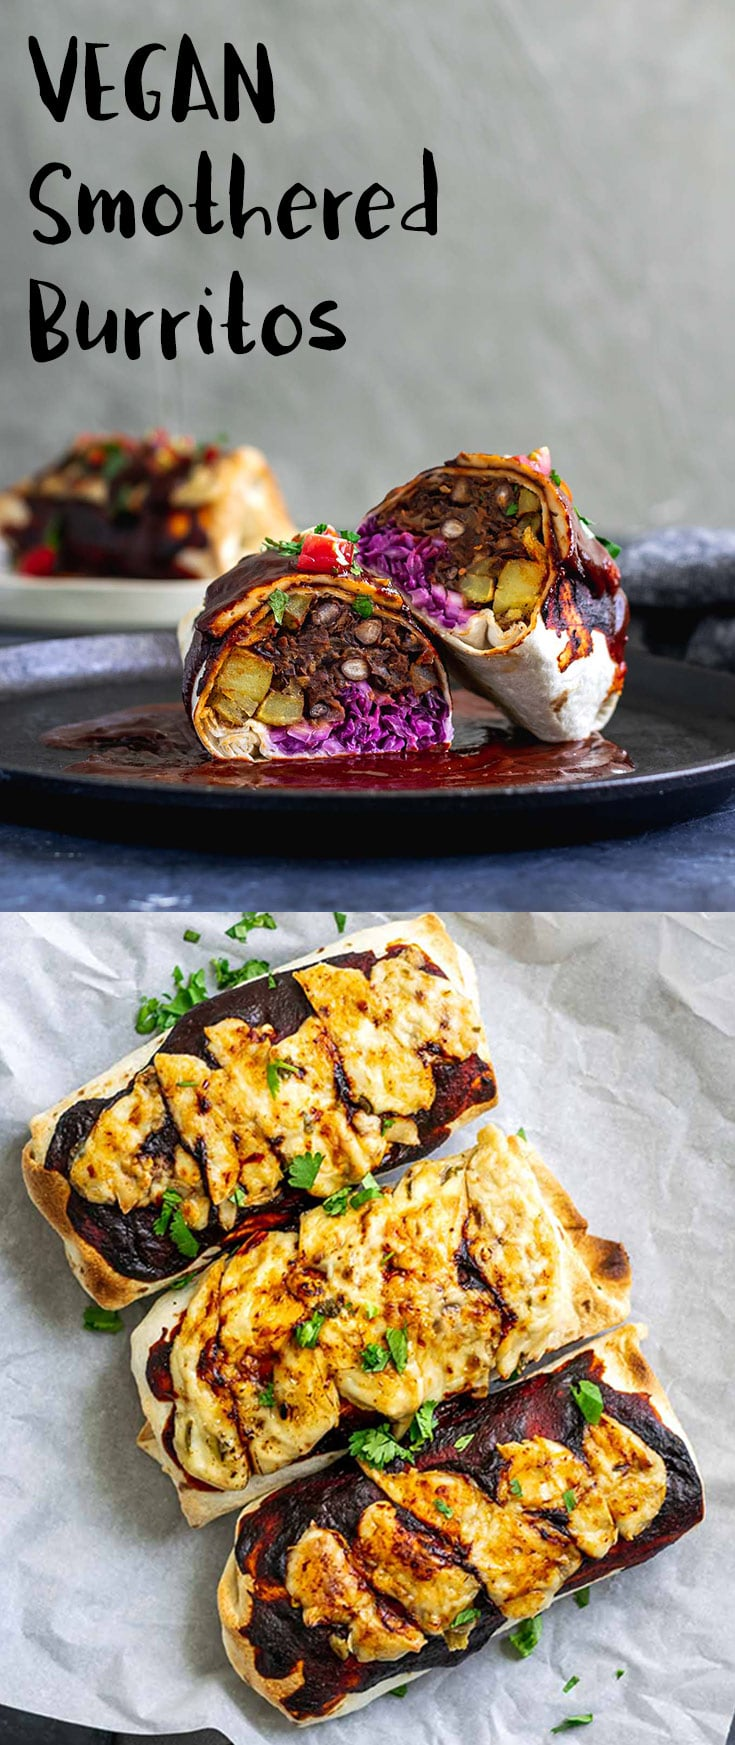 Burritos are filled with homestyle potatoes, cabbage slaw, and delicious easy refried black beans, then smothered with Mexican red chile sauce and vegan cheese and baked until hot. | thecuriouschickpea.com